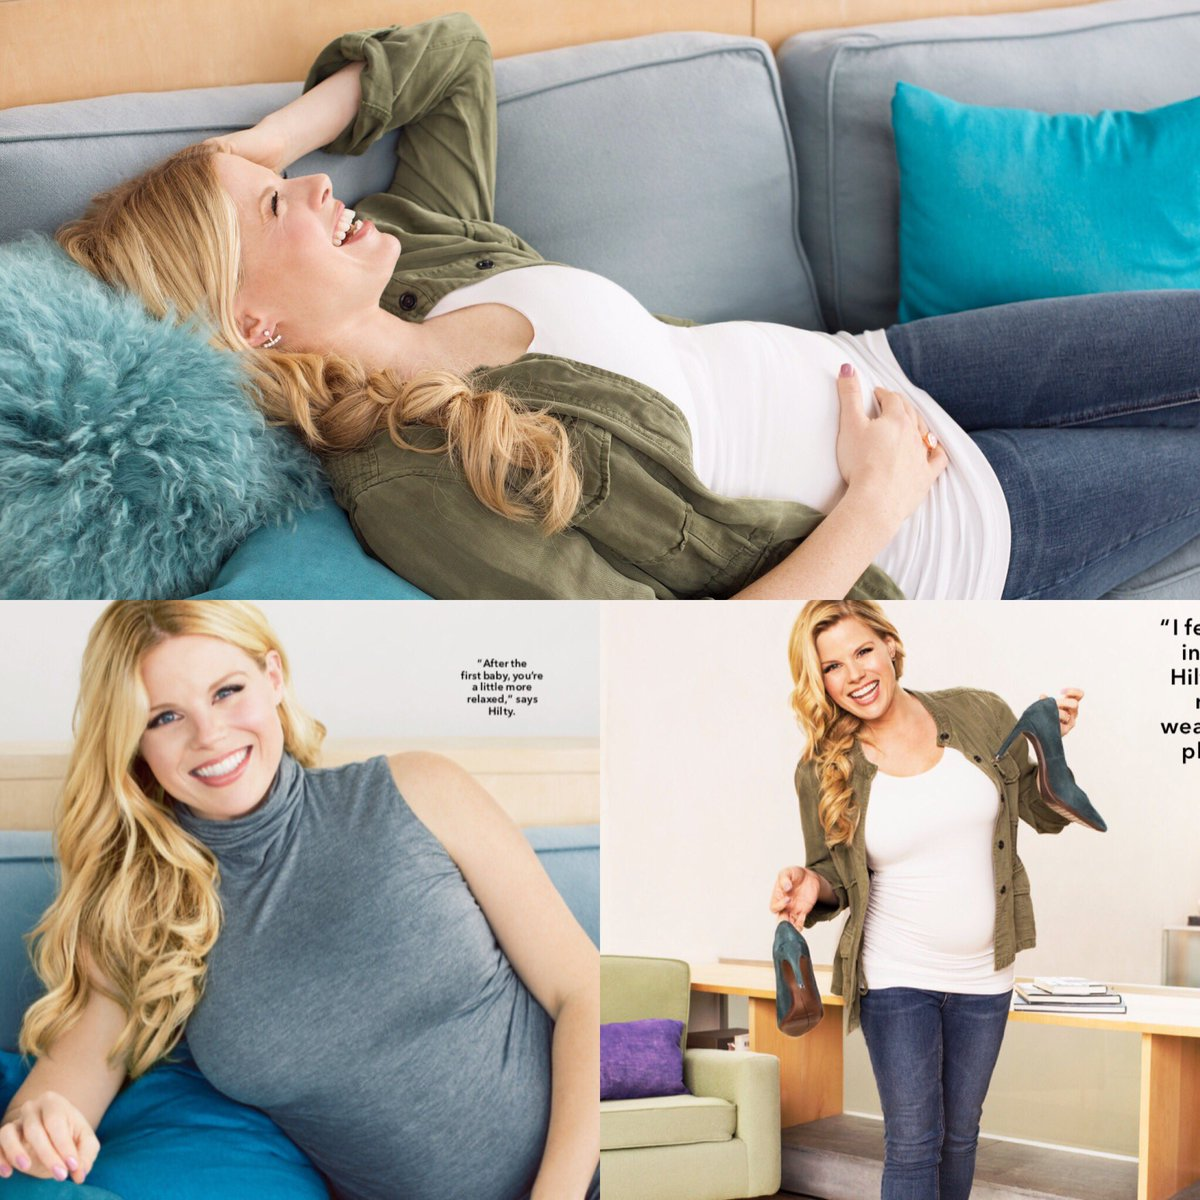 And thank you Anne Menke for the beautiful baby-bump photos! @fitpregnancy https://t.co/vC1q5ikIuu